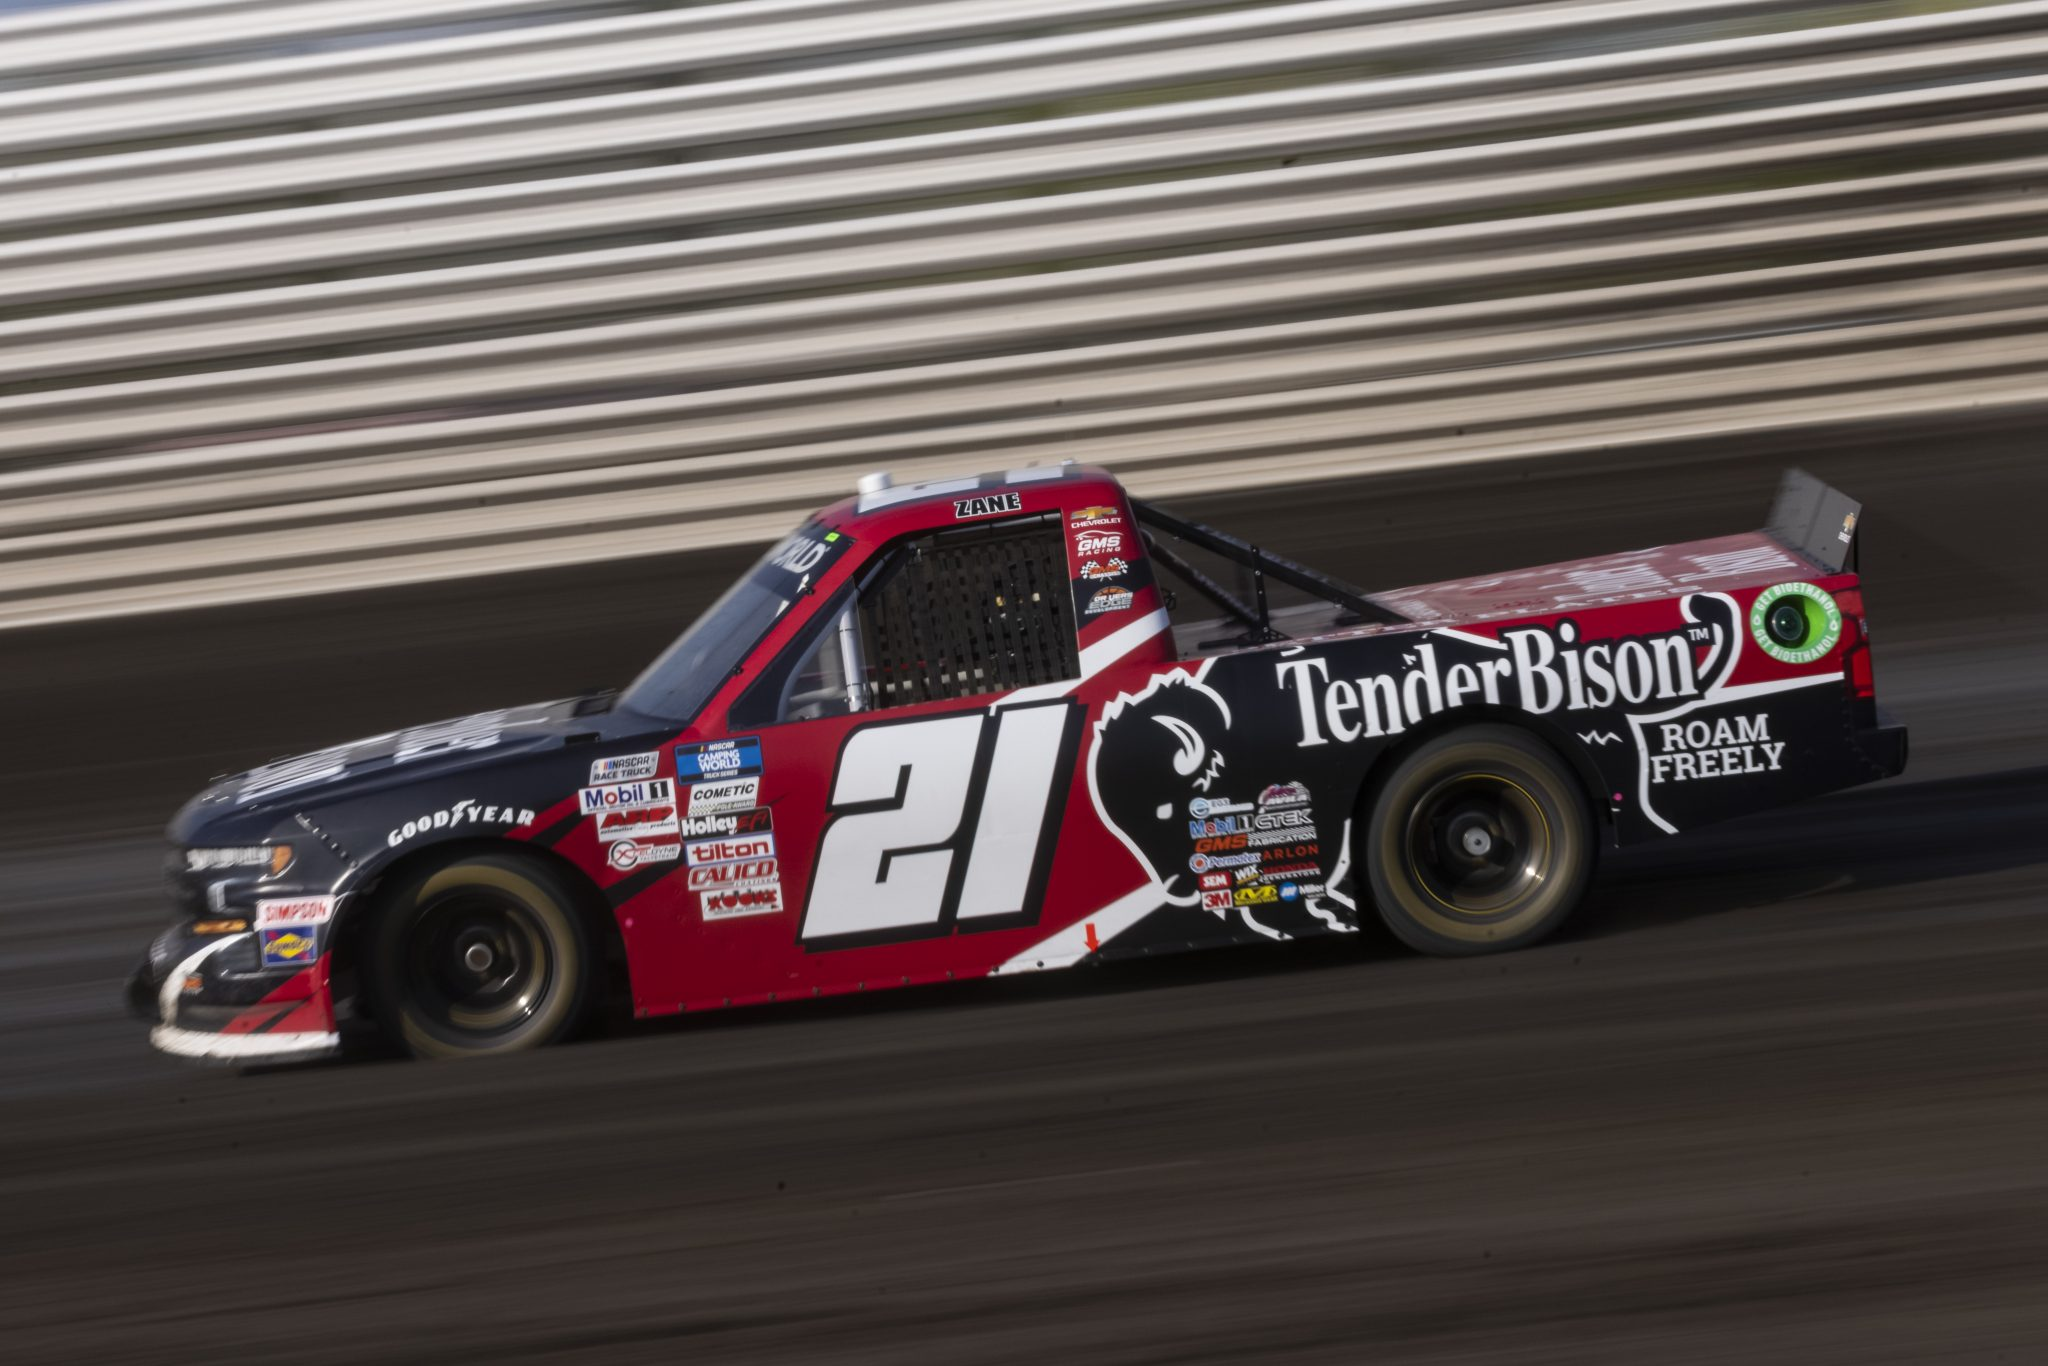 KNOXVILLE, IOWA - JULY 08: Zane Smith, driver of the #21 Tender Bison Chevrolet, drives during practice for the NASCAR Camping World Truck Series Corn Belt 150 presented by Premier Chevy Dealers at Knoxville Raceway on July 08, 2021 in Knoxville, Iowa. (Photo by James Gilbert/Getty Images) | Getty Images